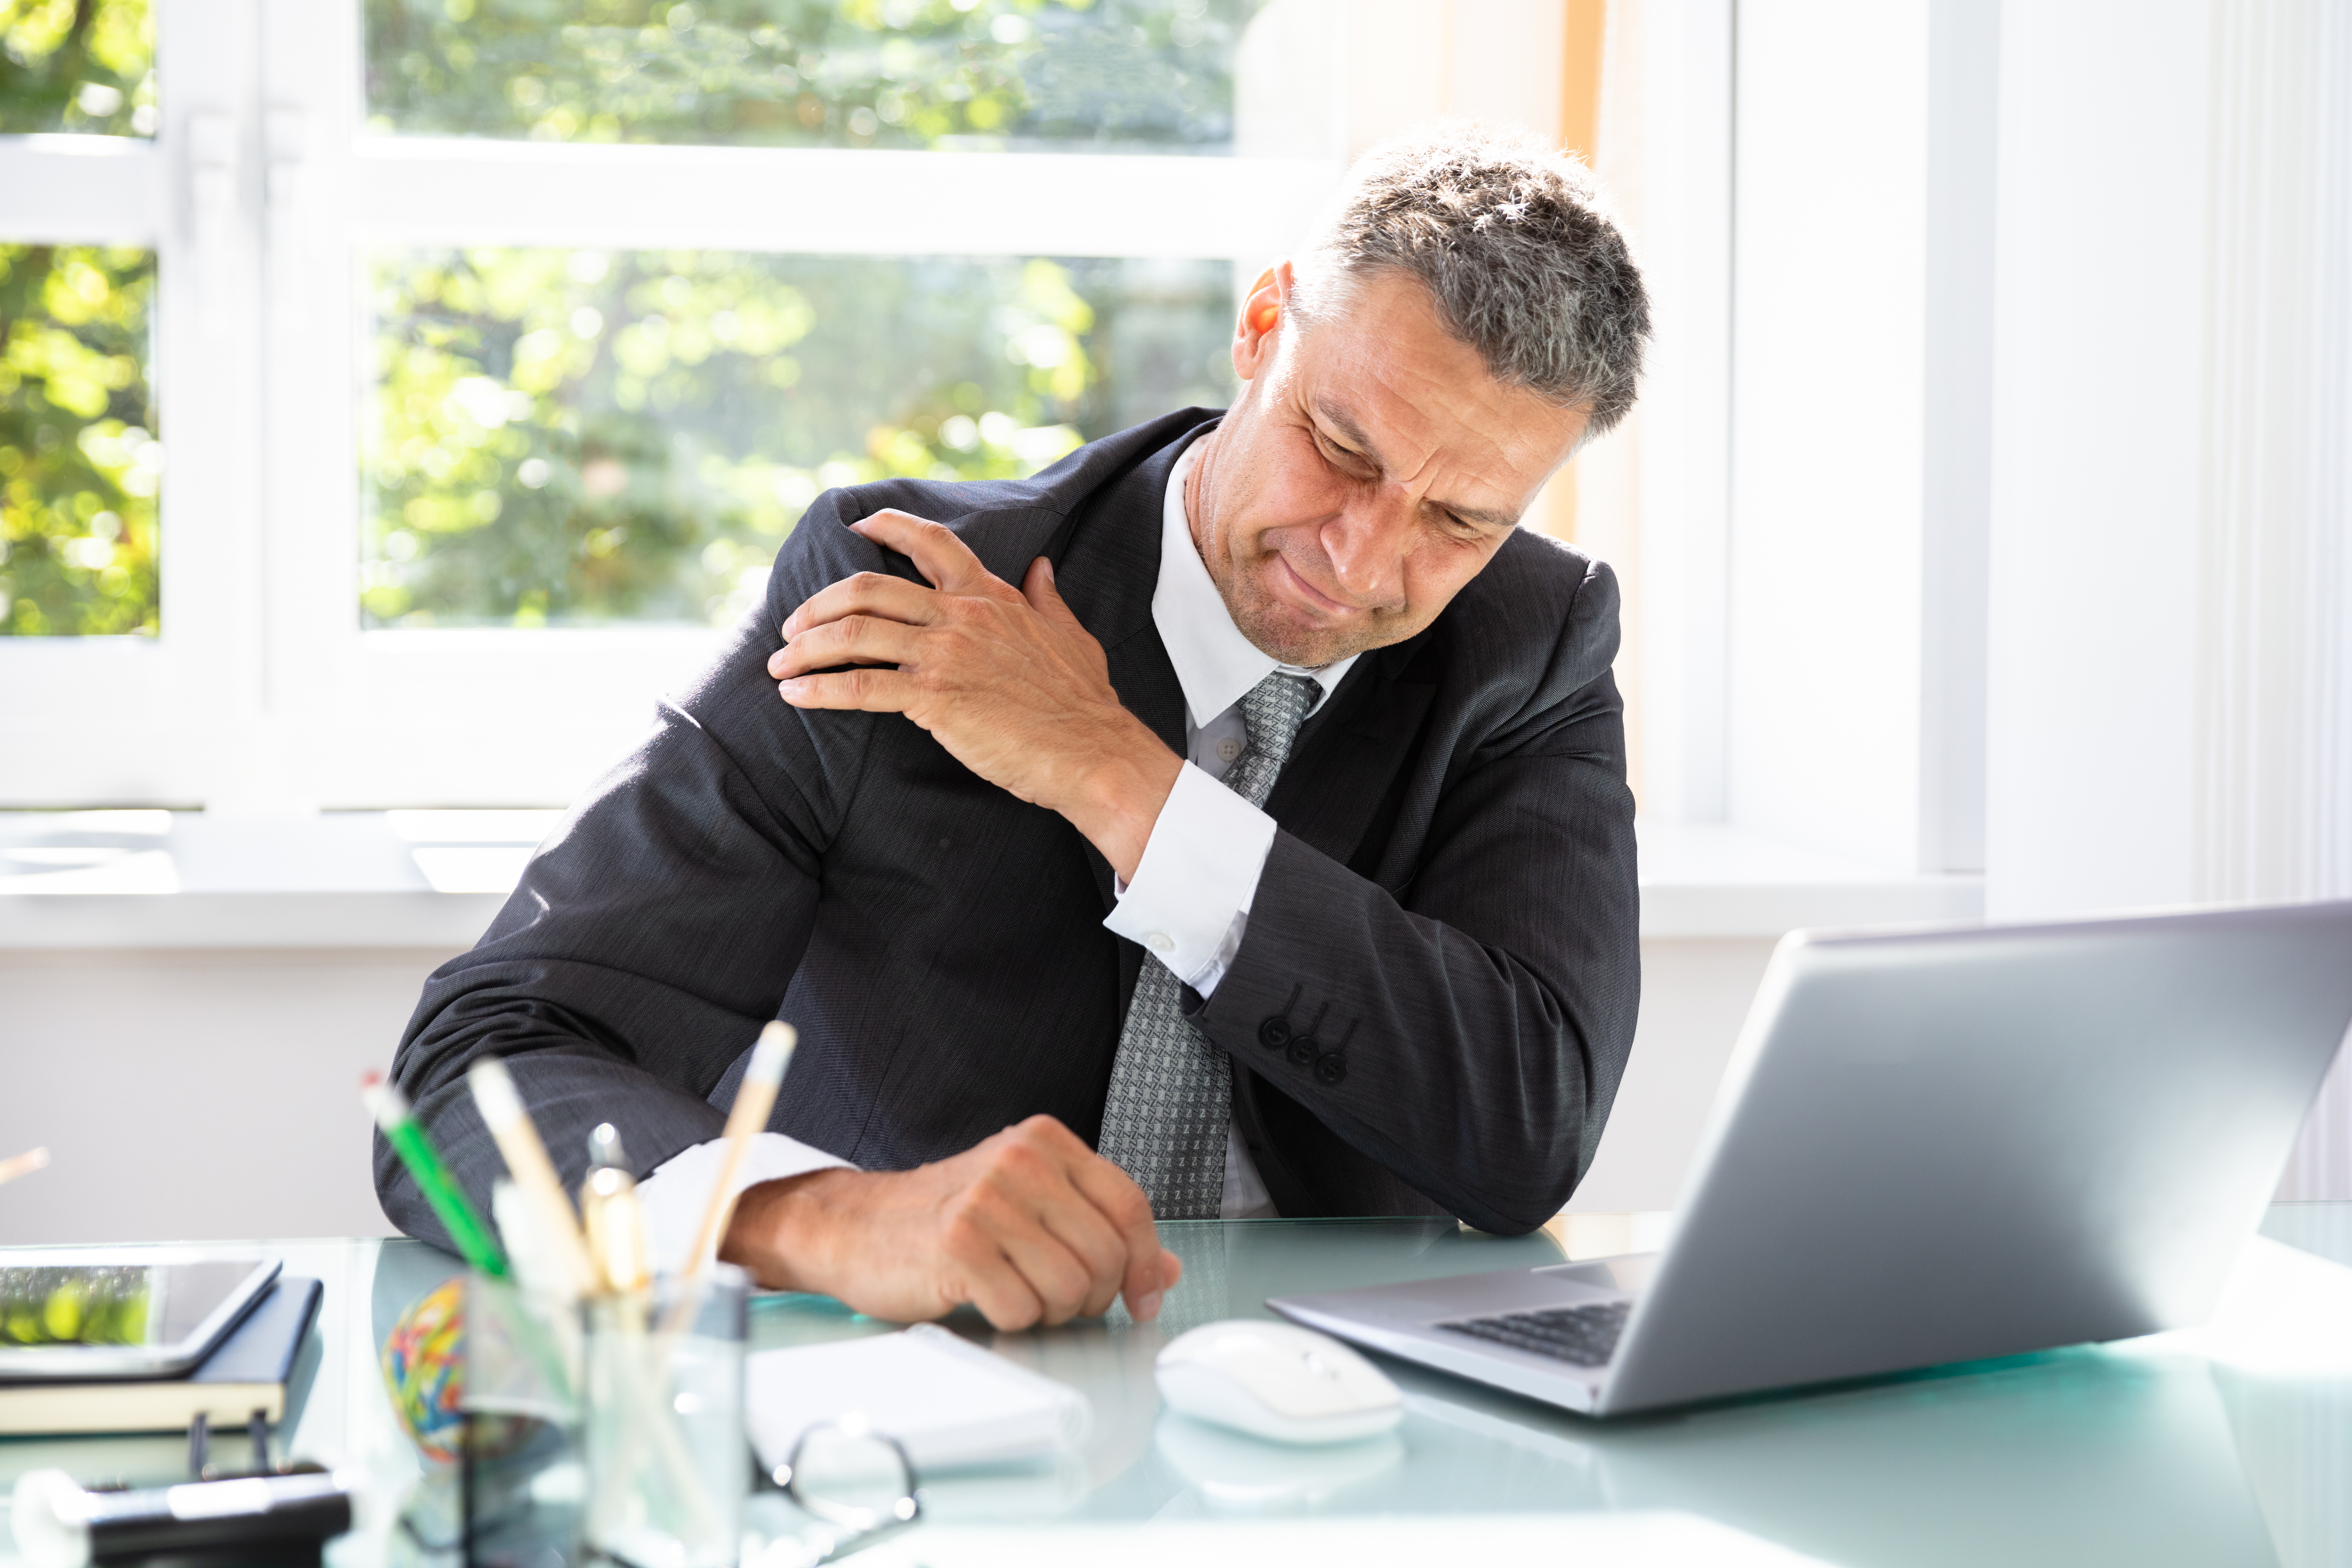 Shoulder Pain from Heart Attack vs. Pinched Nerve in Neck